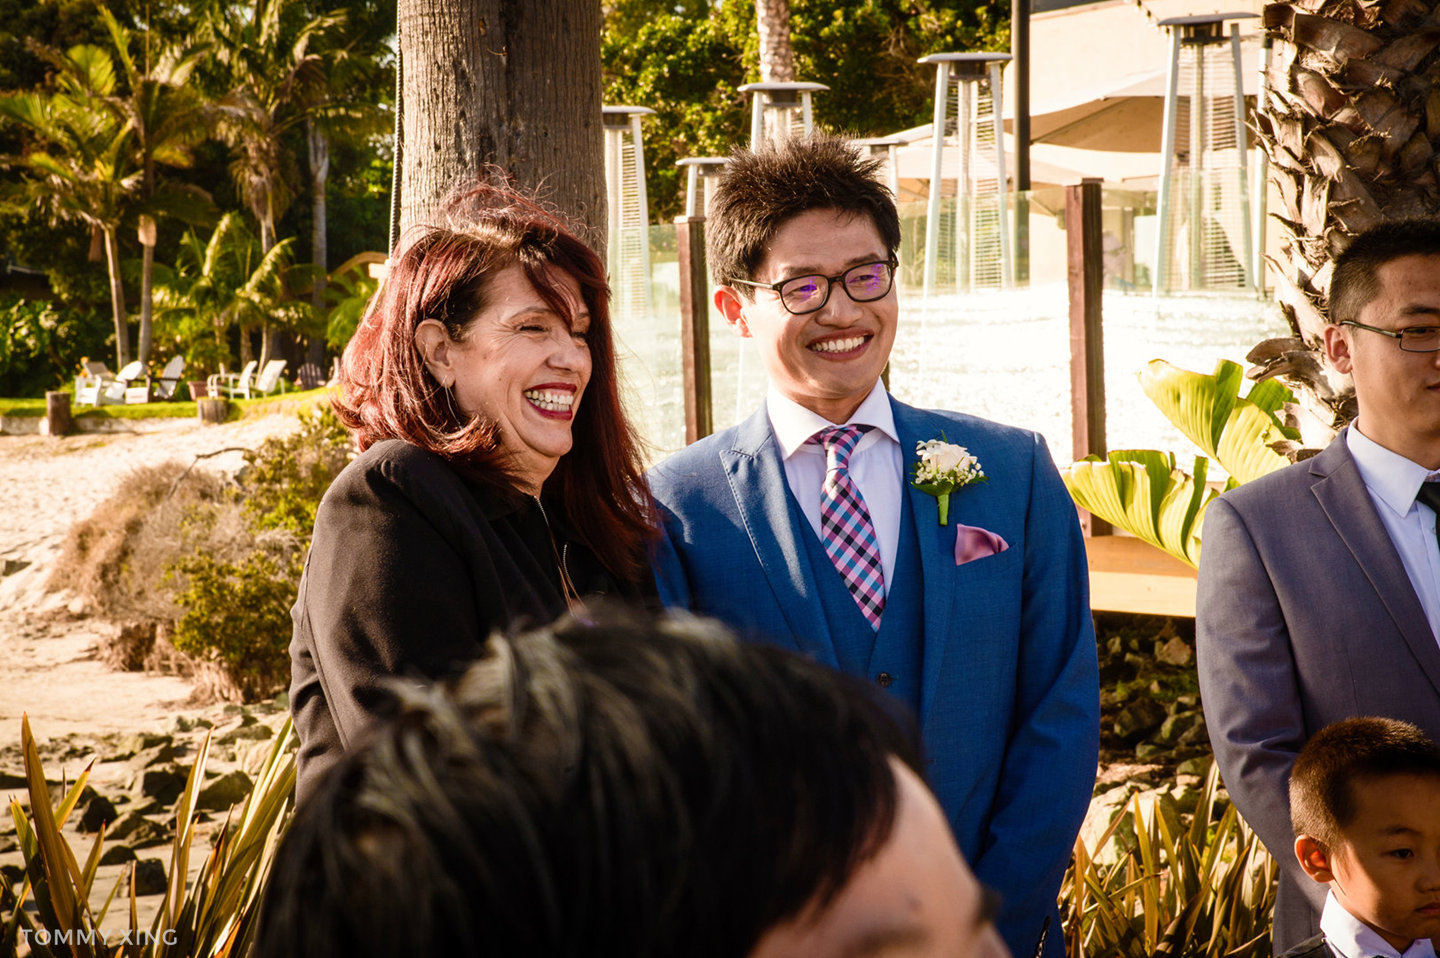 Paradise Point Resort Wedding Xiaolu & Bin San Diego 圣地亚哥婚礼摄影跟拍 Tommy Xing Photography 洛杉矶婚礼婚纱照摄影师 105.jpg